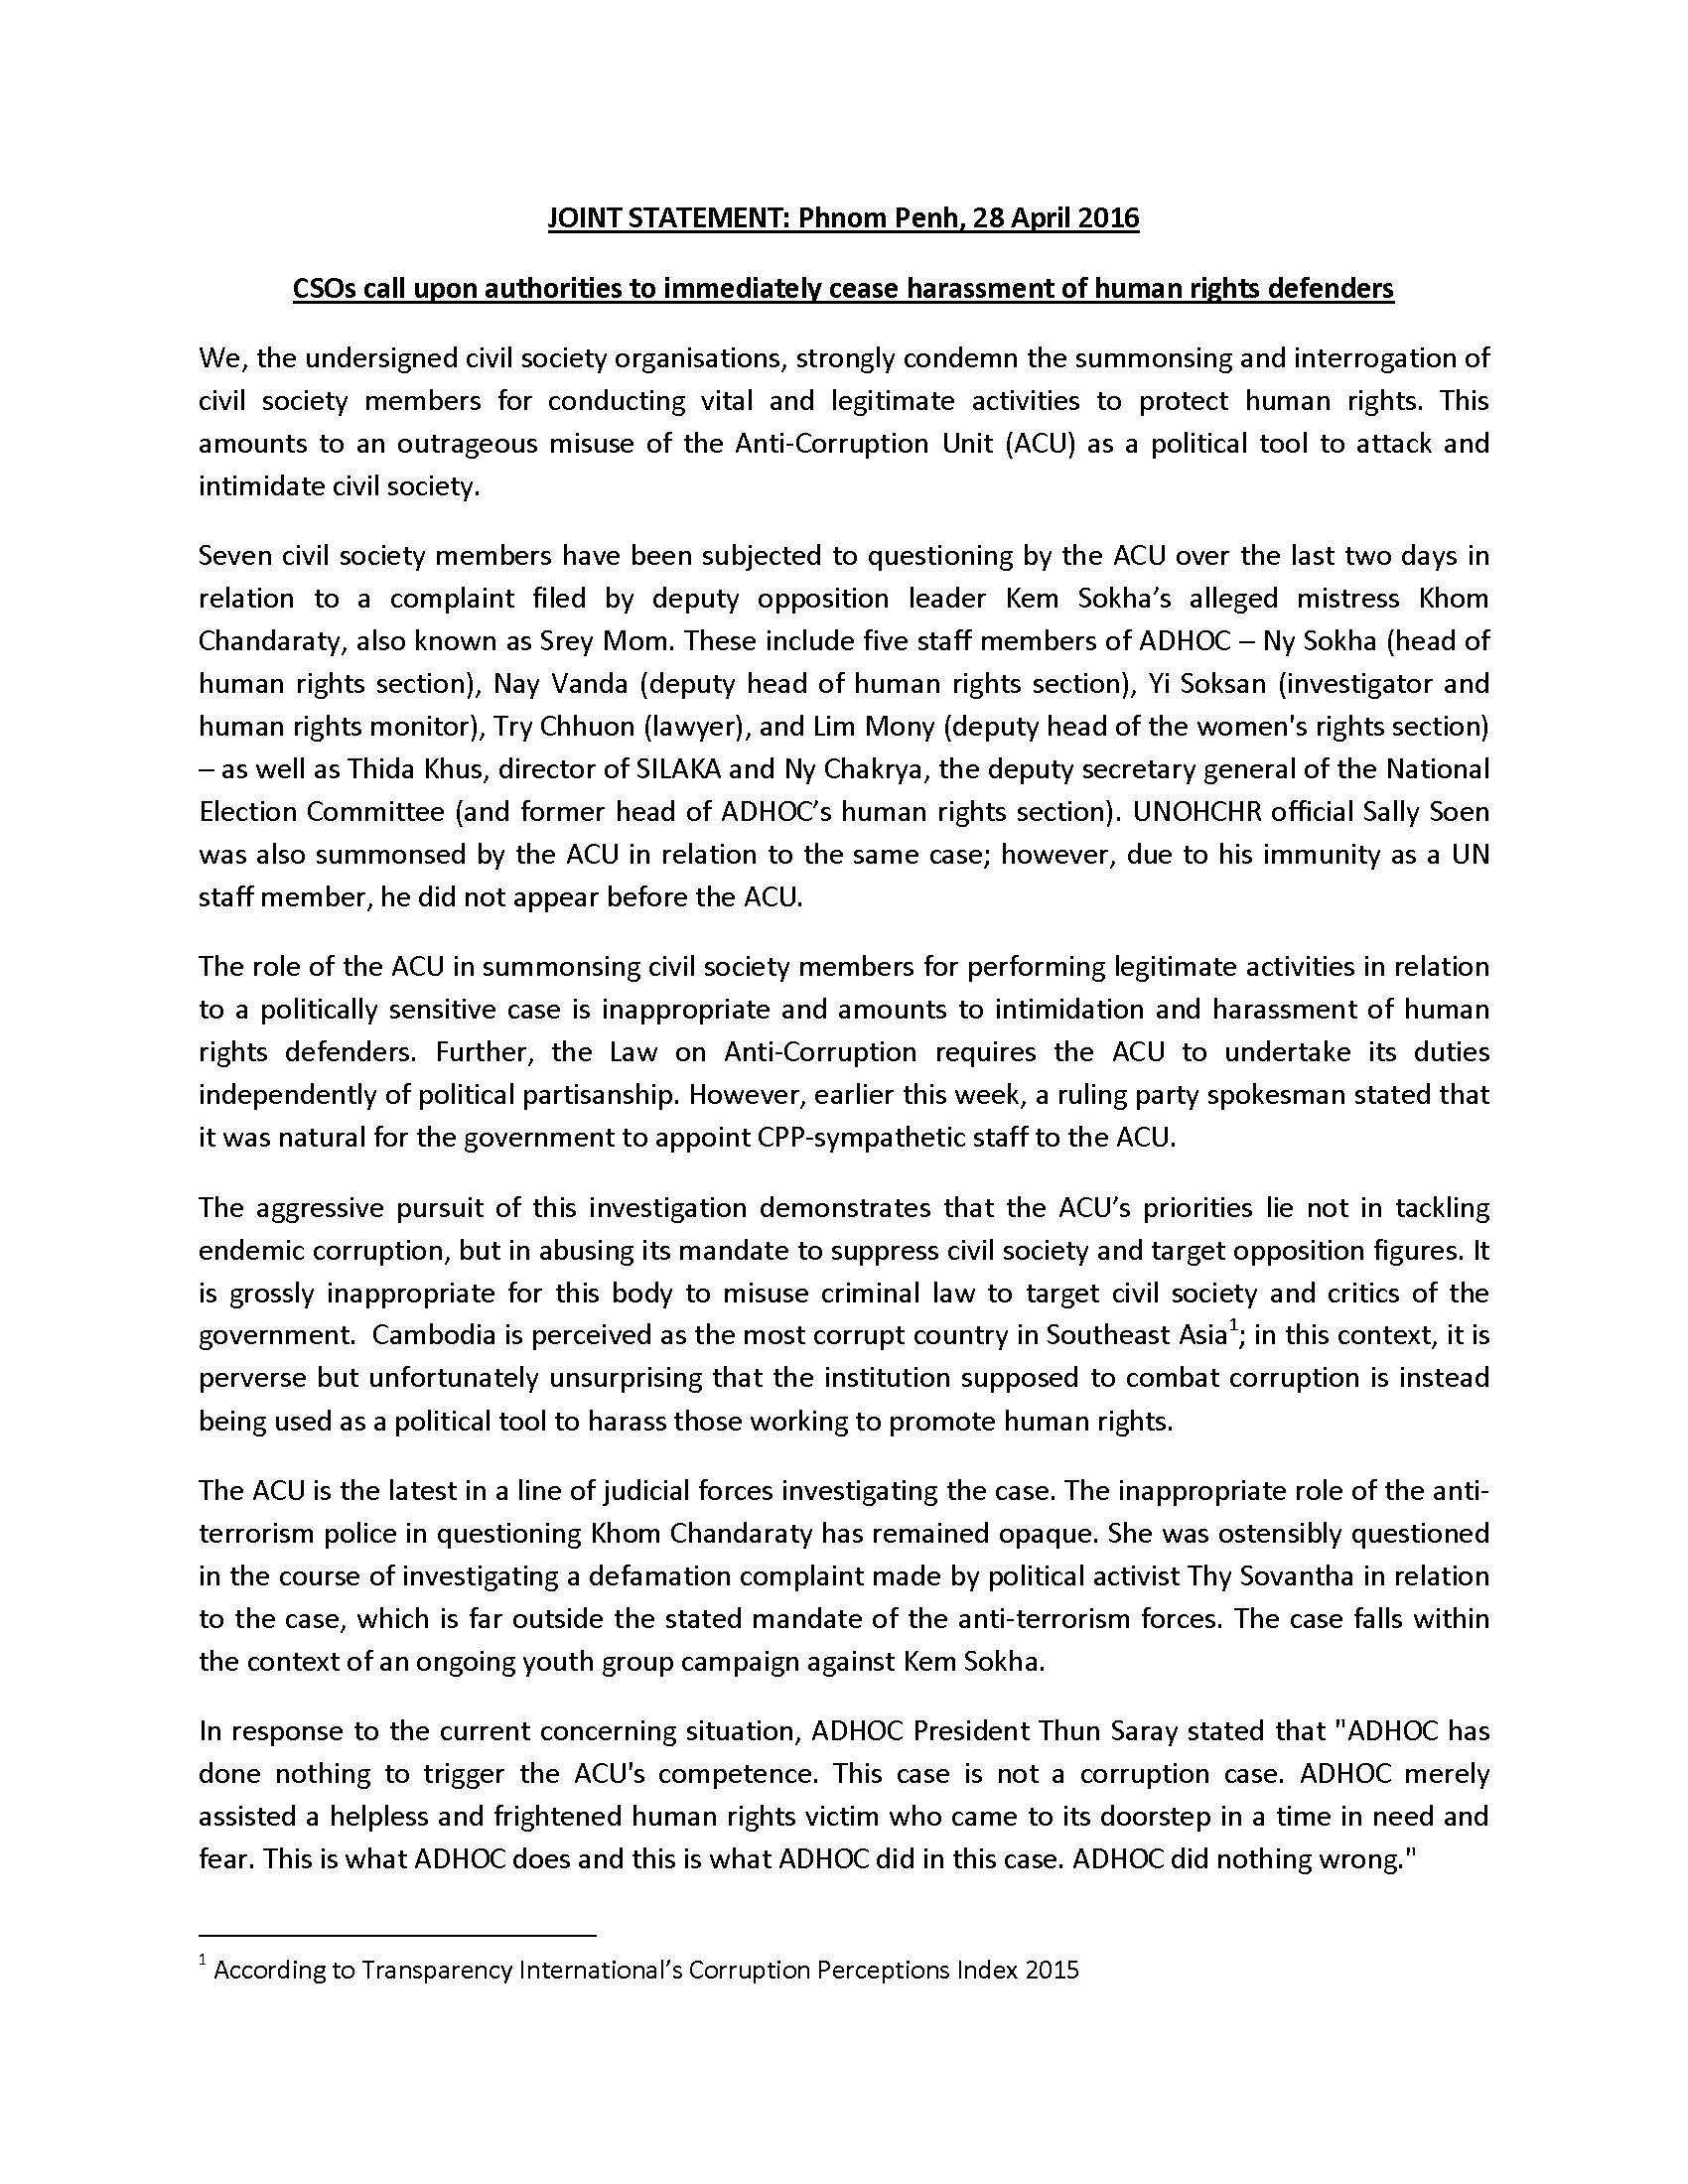 402Joint Press Release - CSOs call upon the authorities to immediately cease harrassment of human rights defenders _(ENG)-2_Page_1